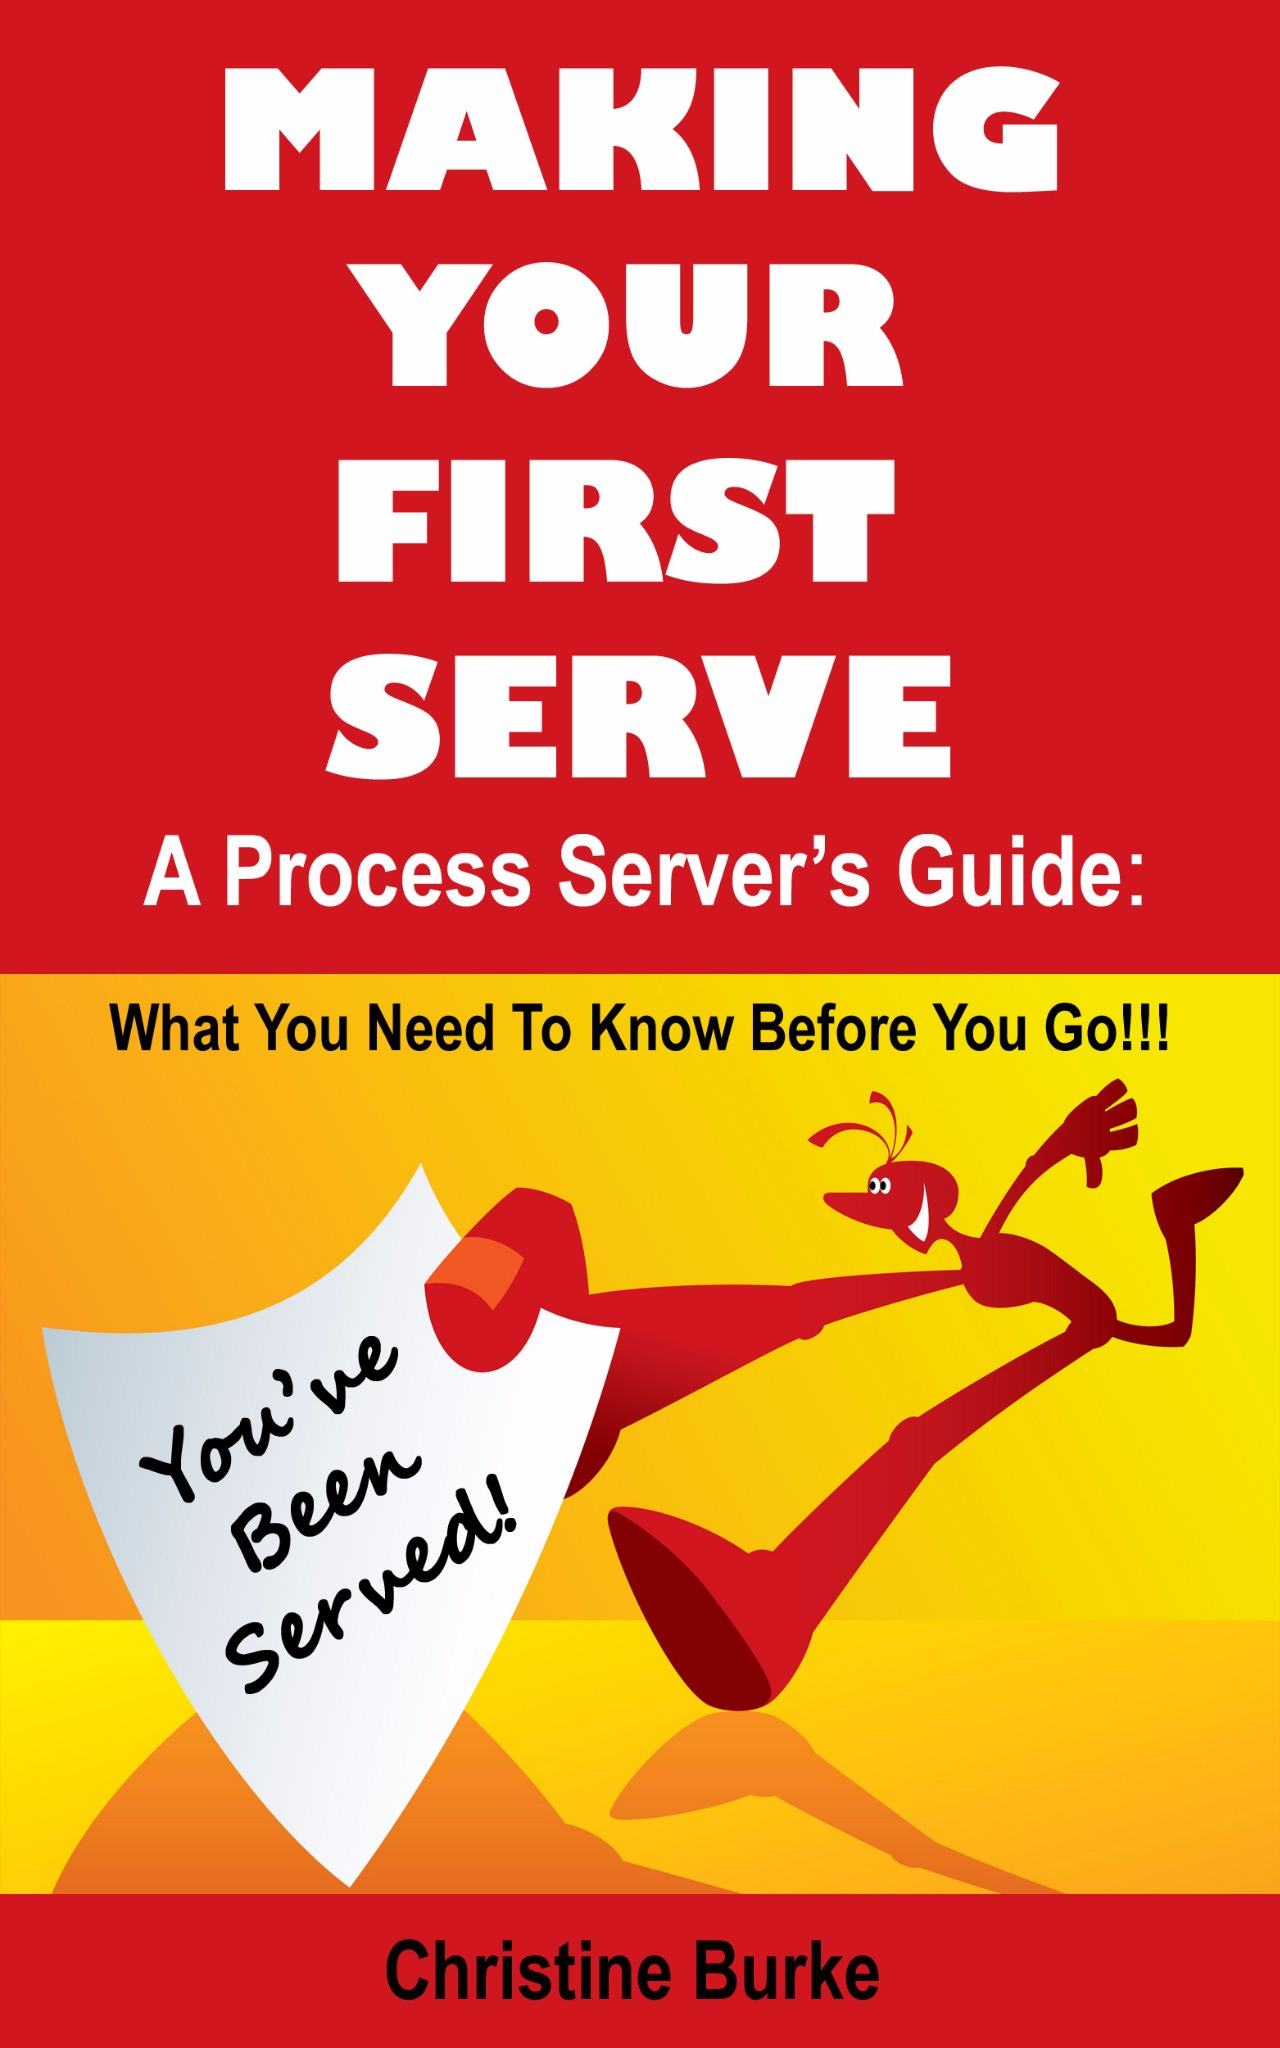 Making Your First Serve: A Process Server's Guide